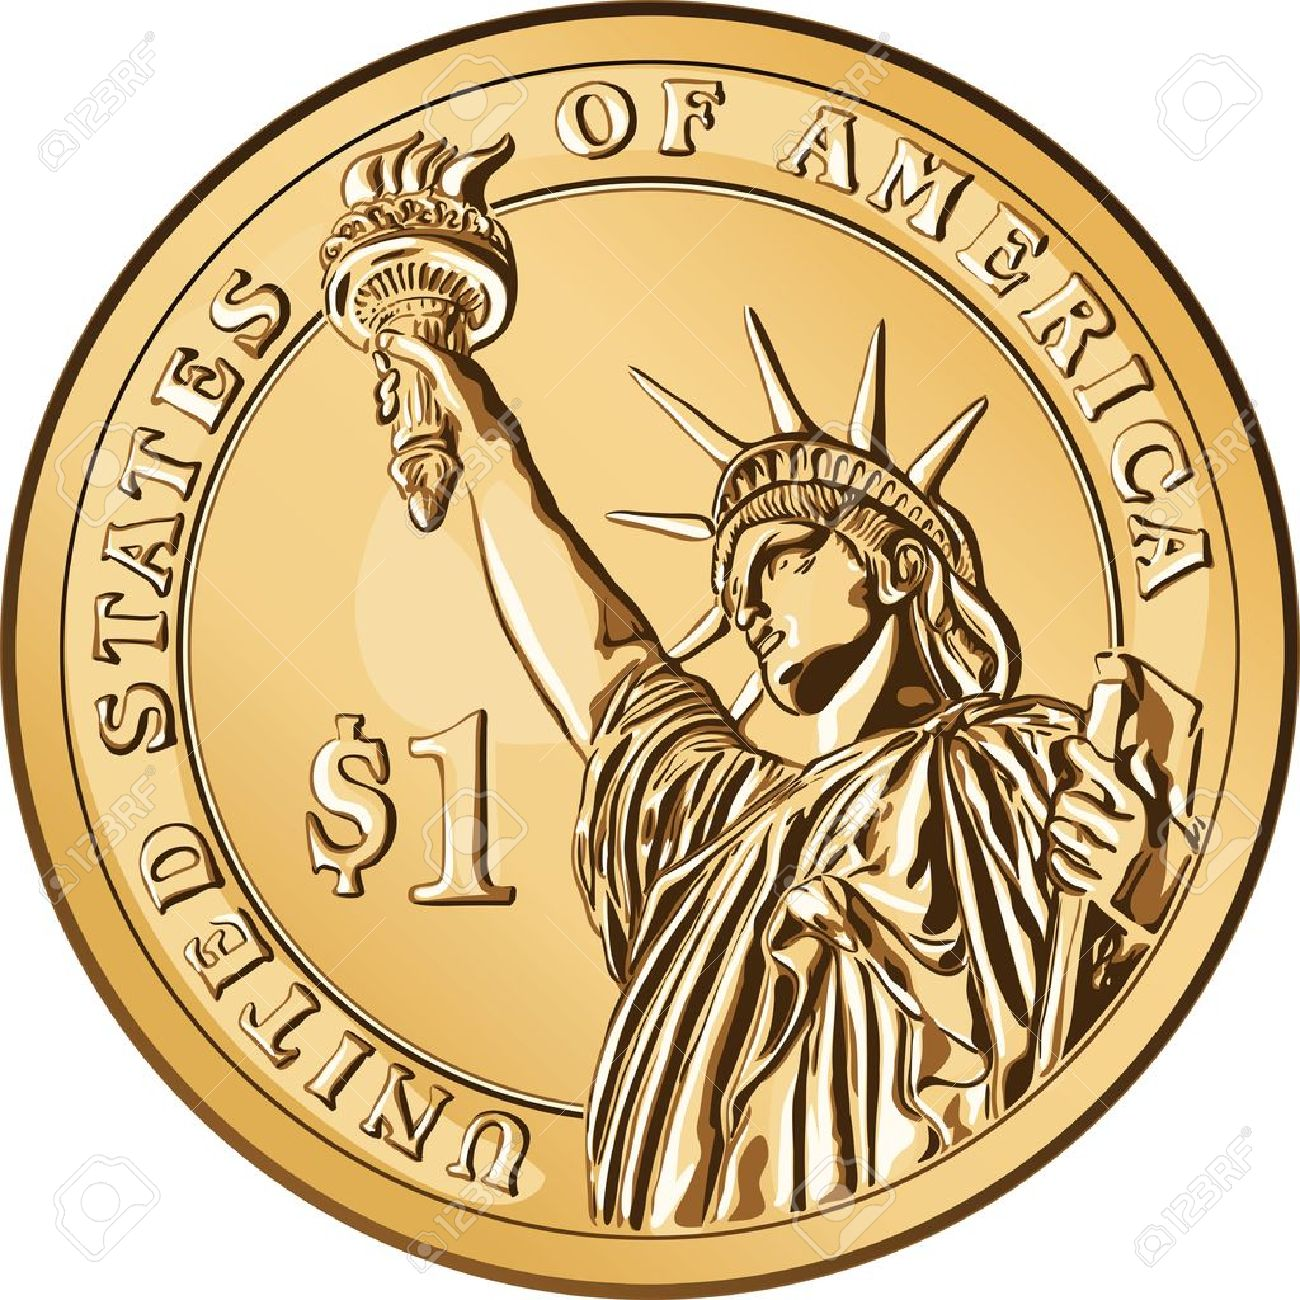 American money, one dollar coin with the image of the Statue of Liberty - 10021280